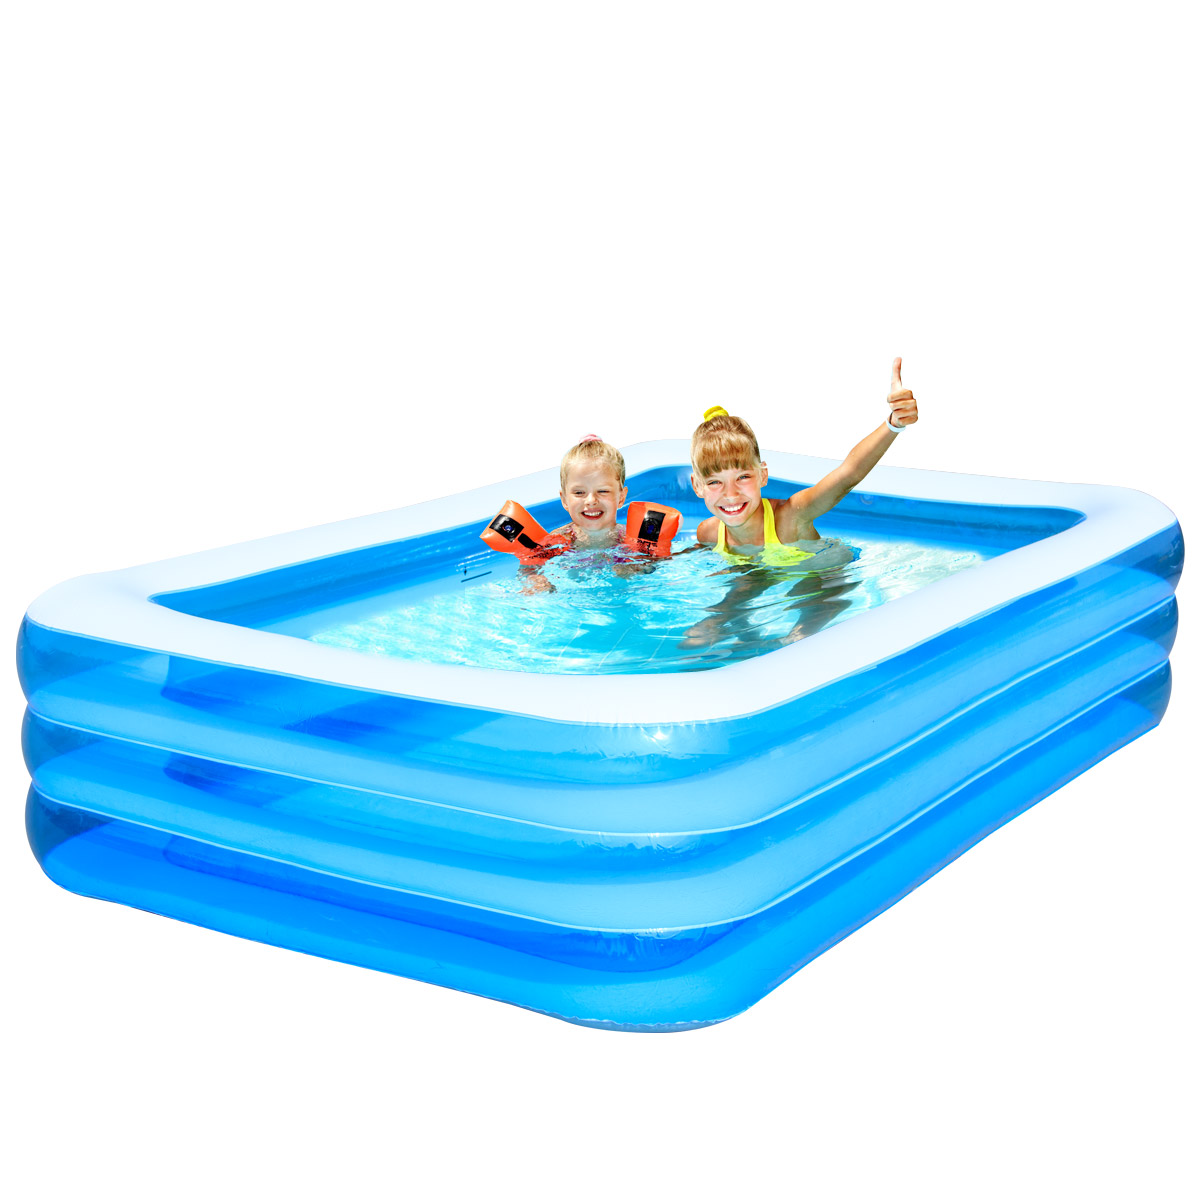 Piscine gonflable prix for Piscine zodiac prix